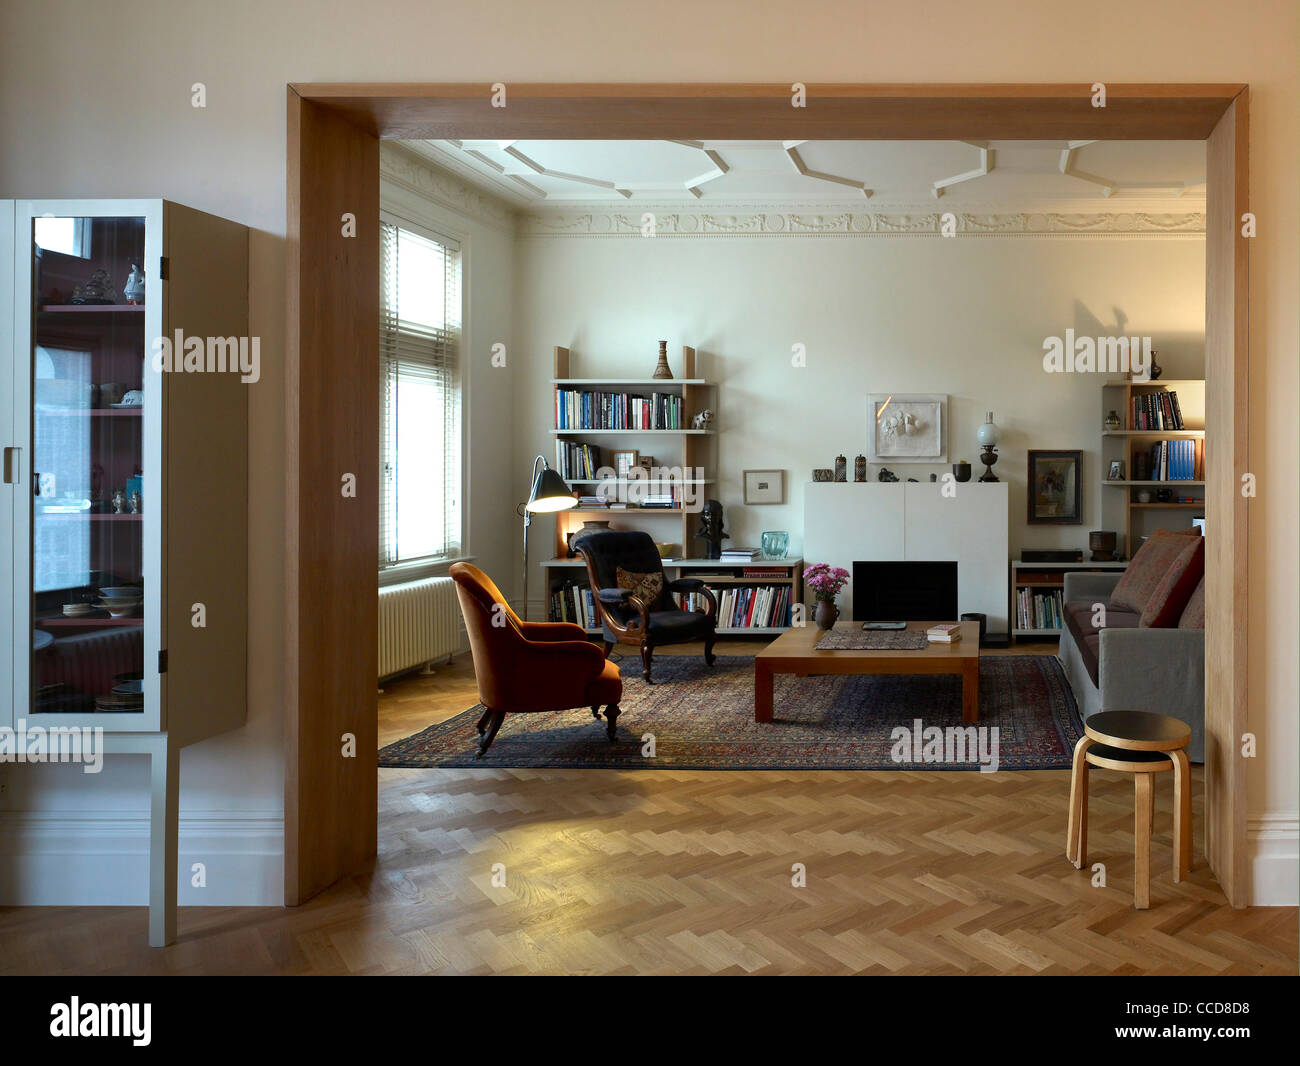 Living room - Refurbished Apartt in central London Stock Photo ...